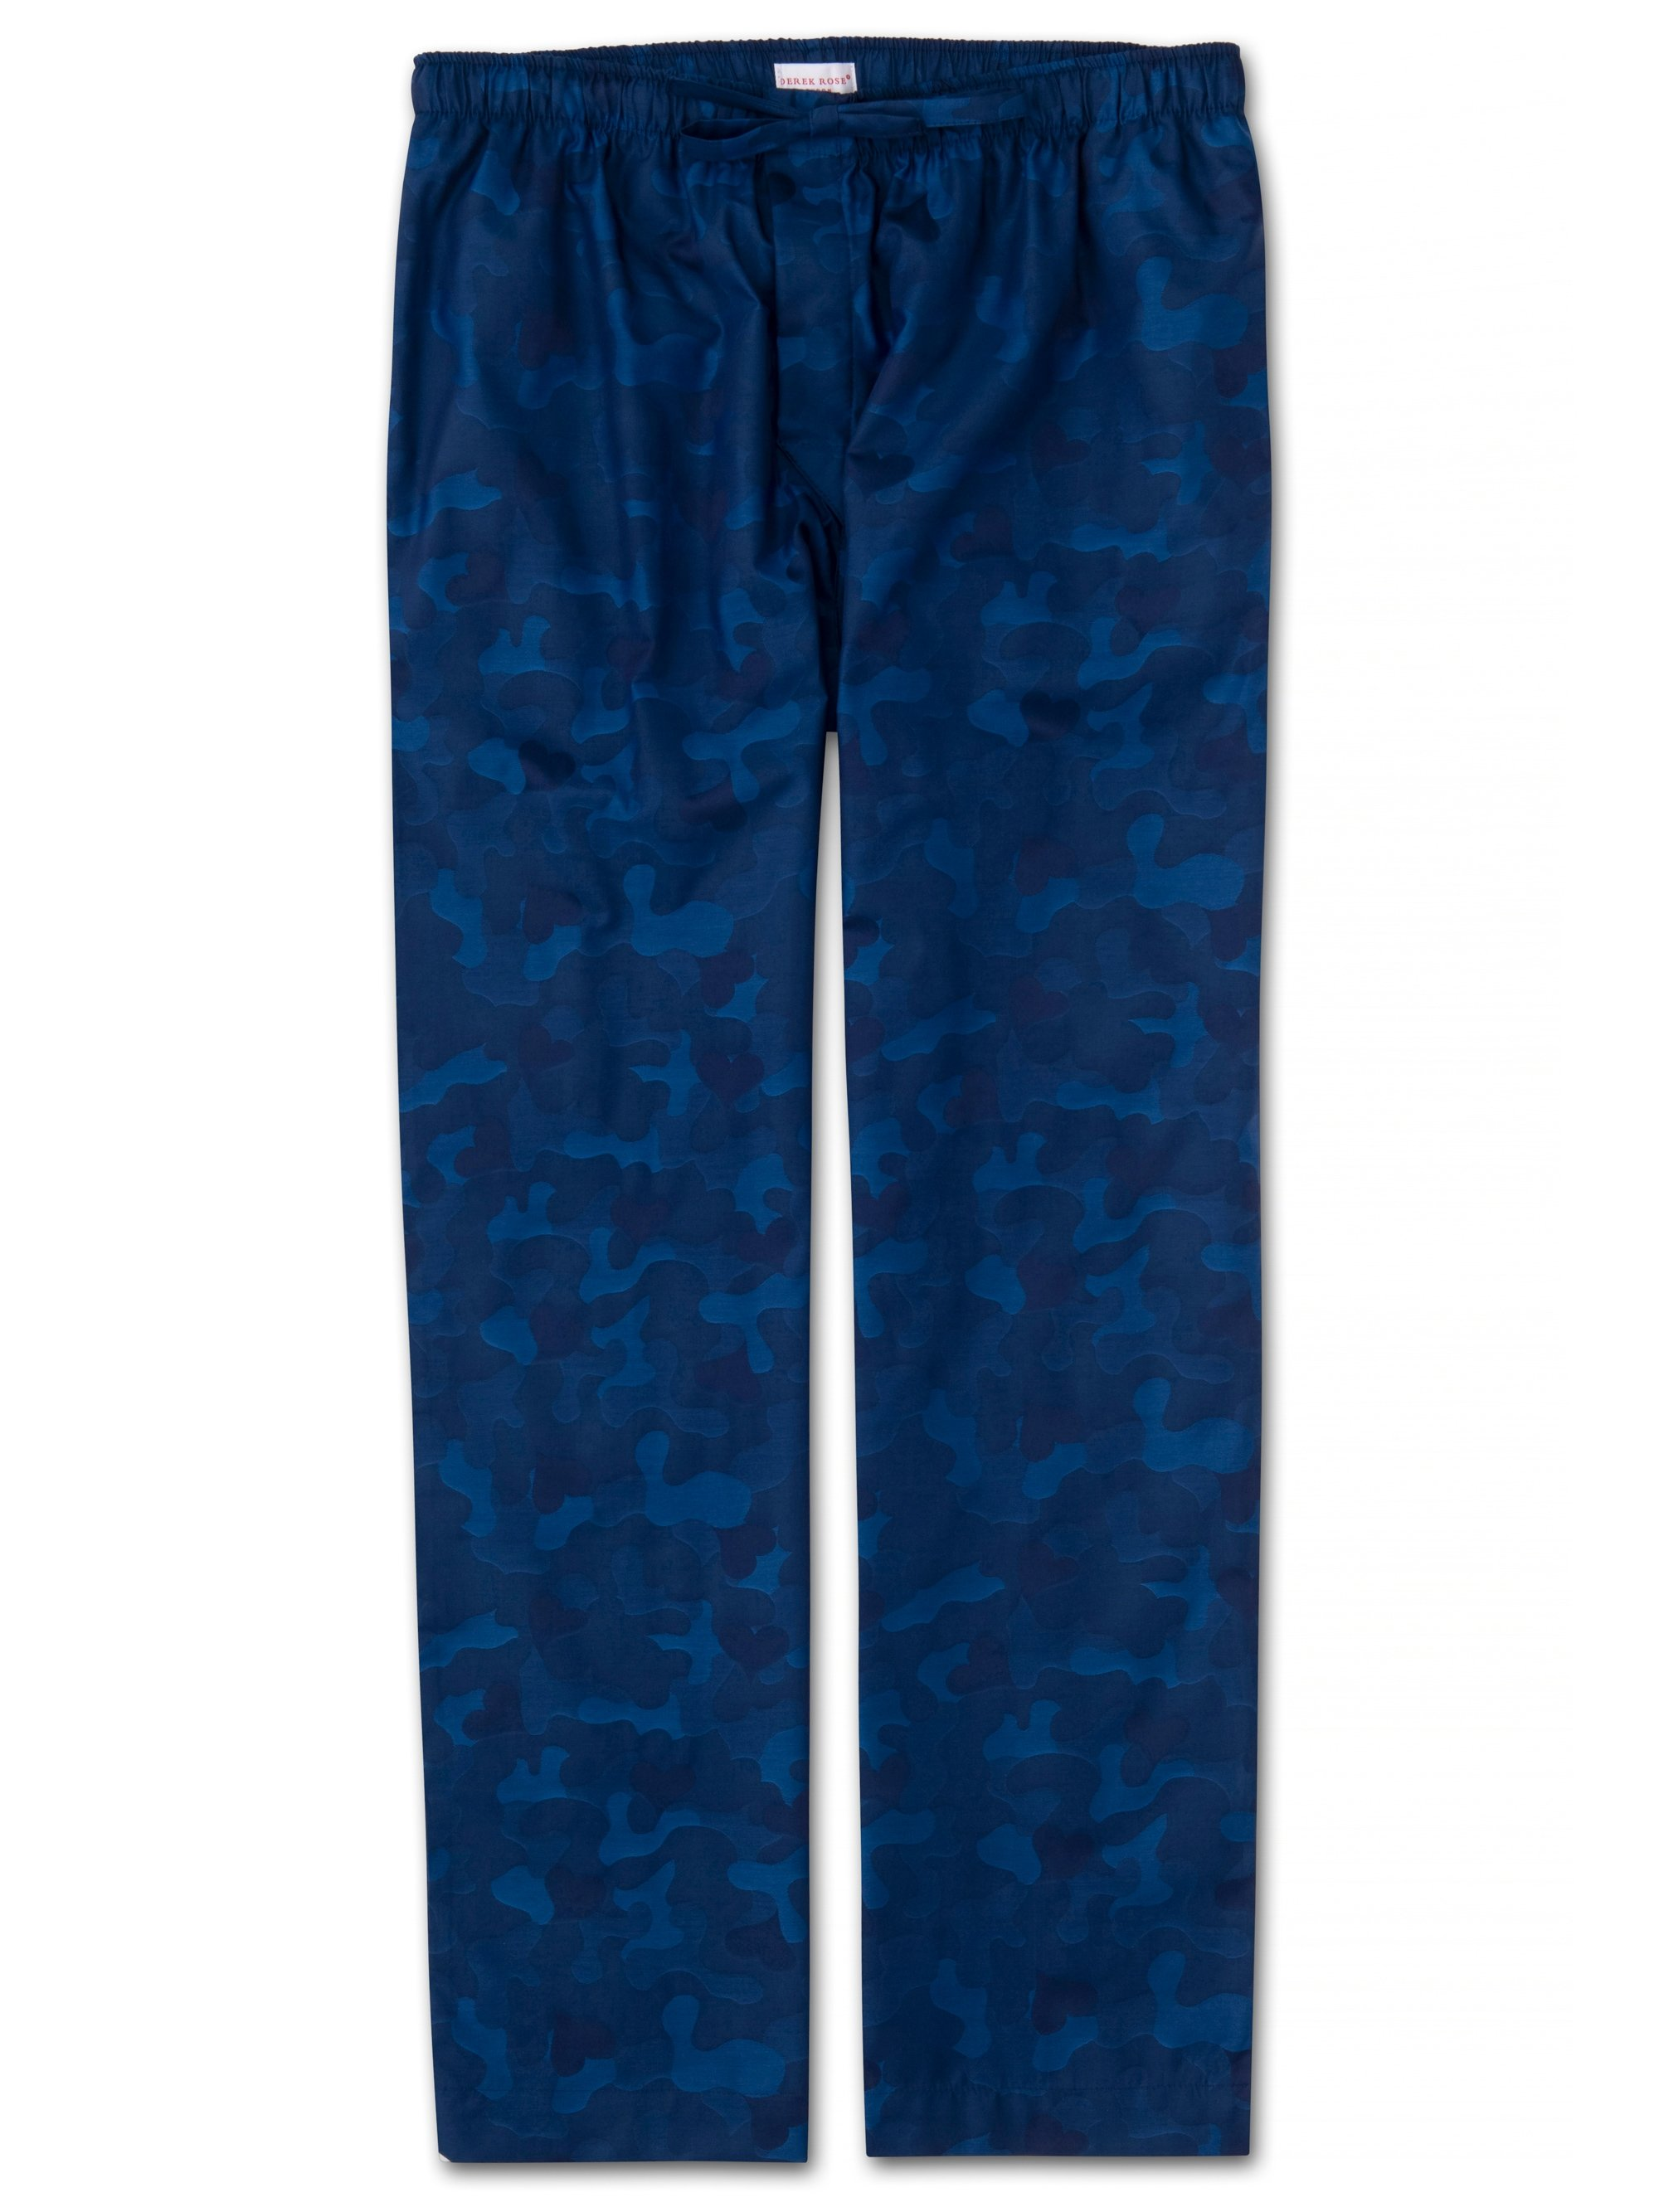 Men's Lounge Trousers Paris 18 Cotton Jacquard Navy